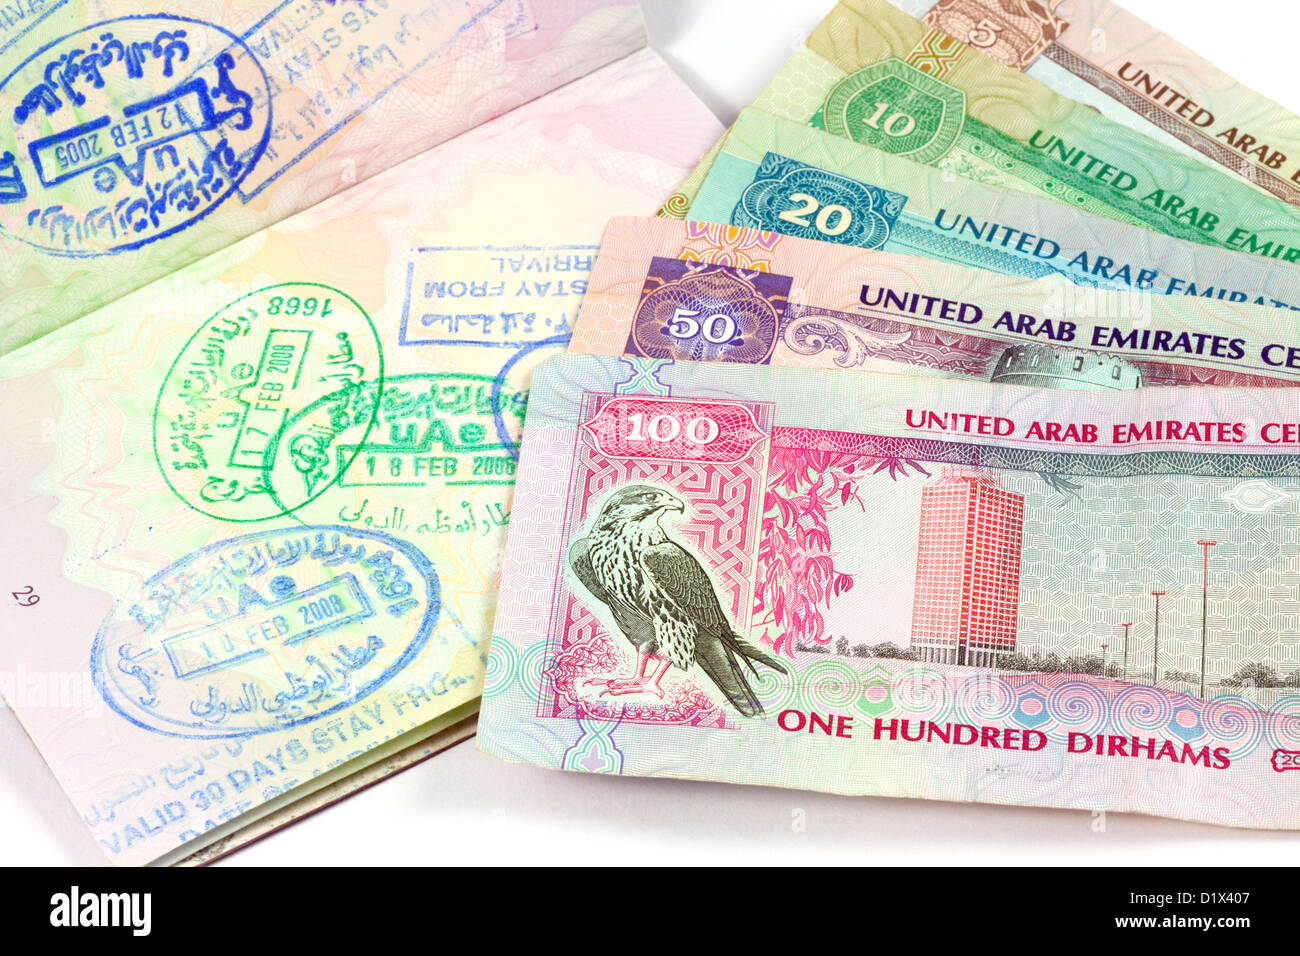 UAE holiday travel money currency and visa stamps in a passport for Dubai and Abu Dhabi - Stock Image